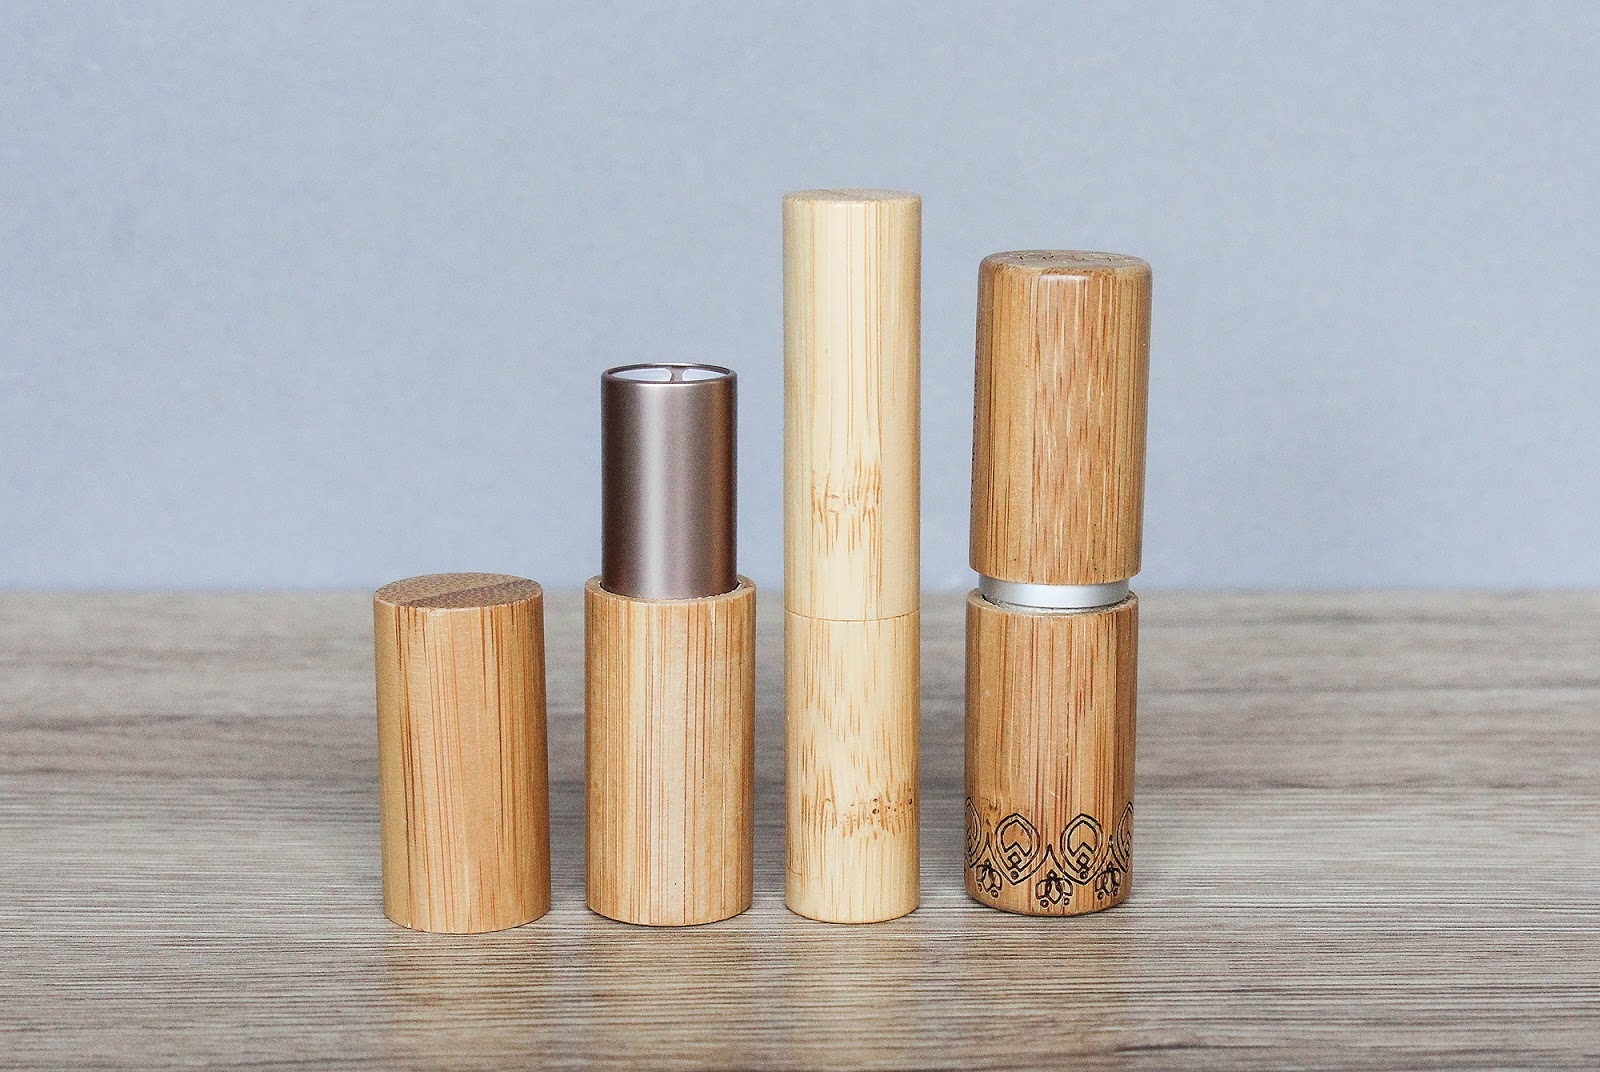 Bamboo packaging, makeup beauty products